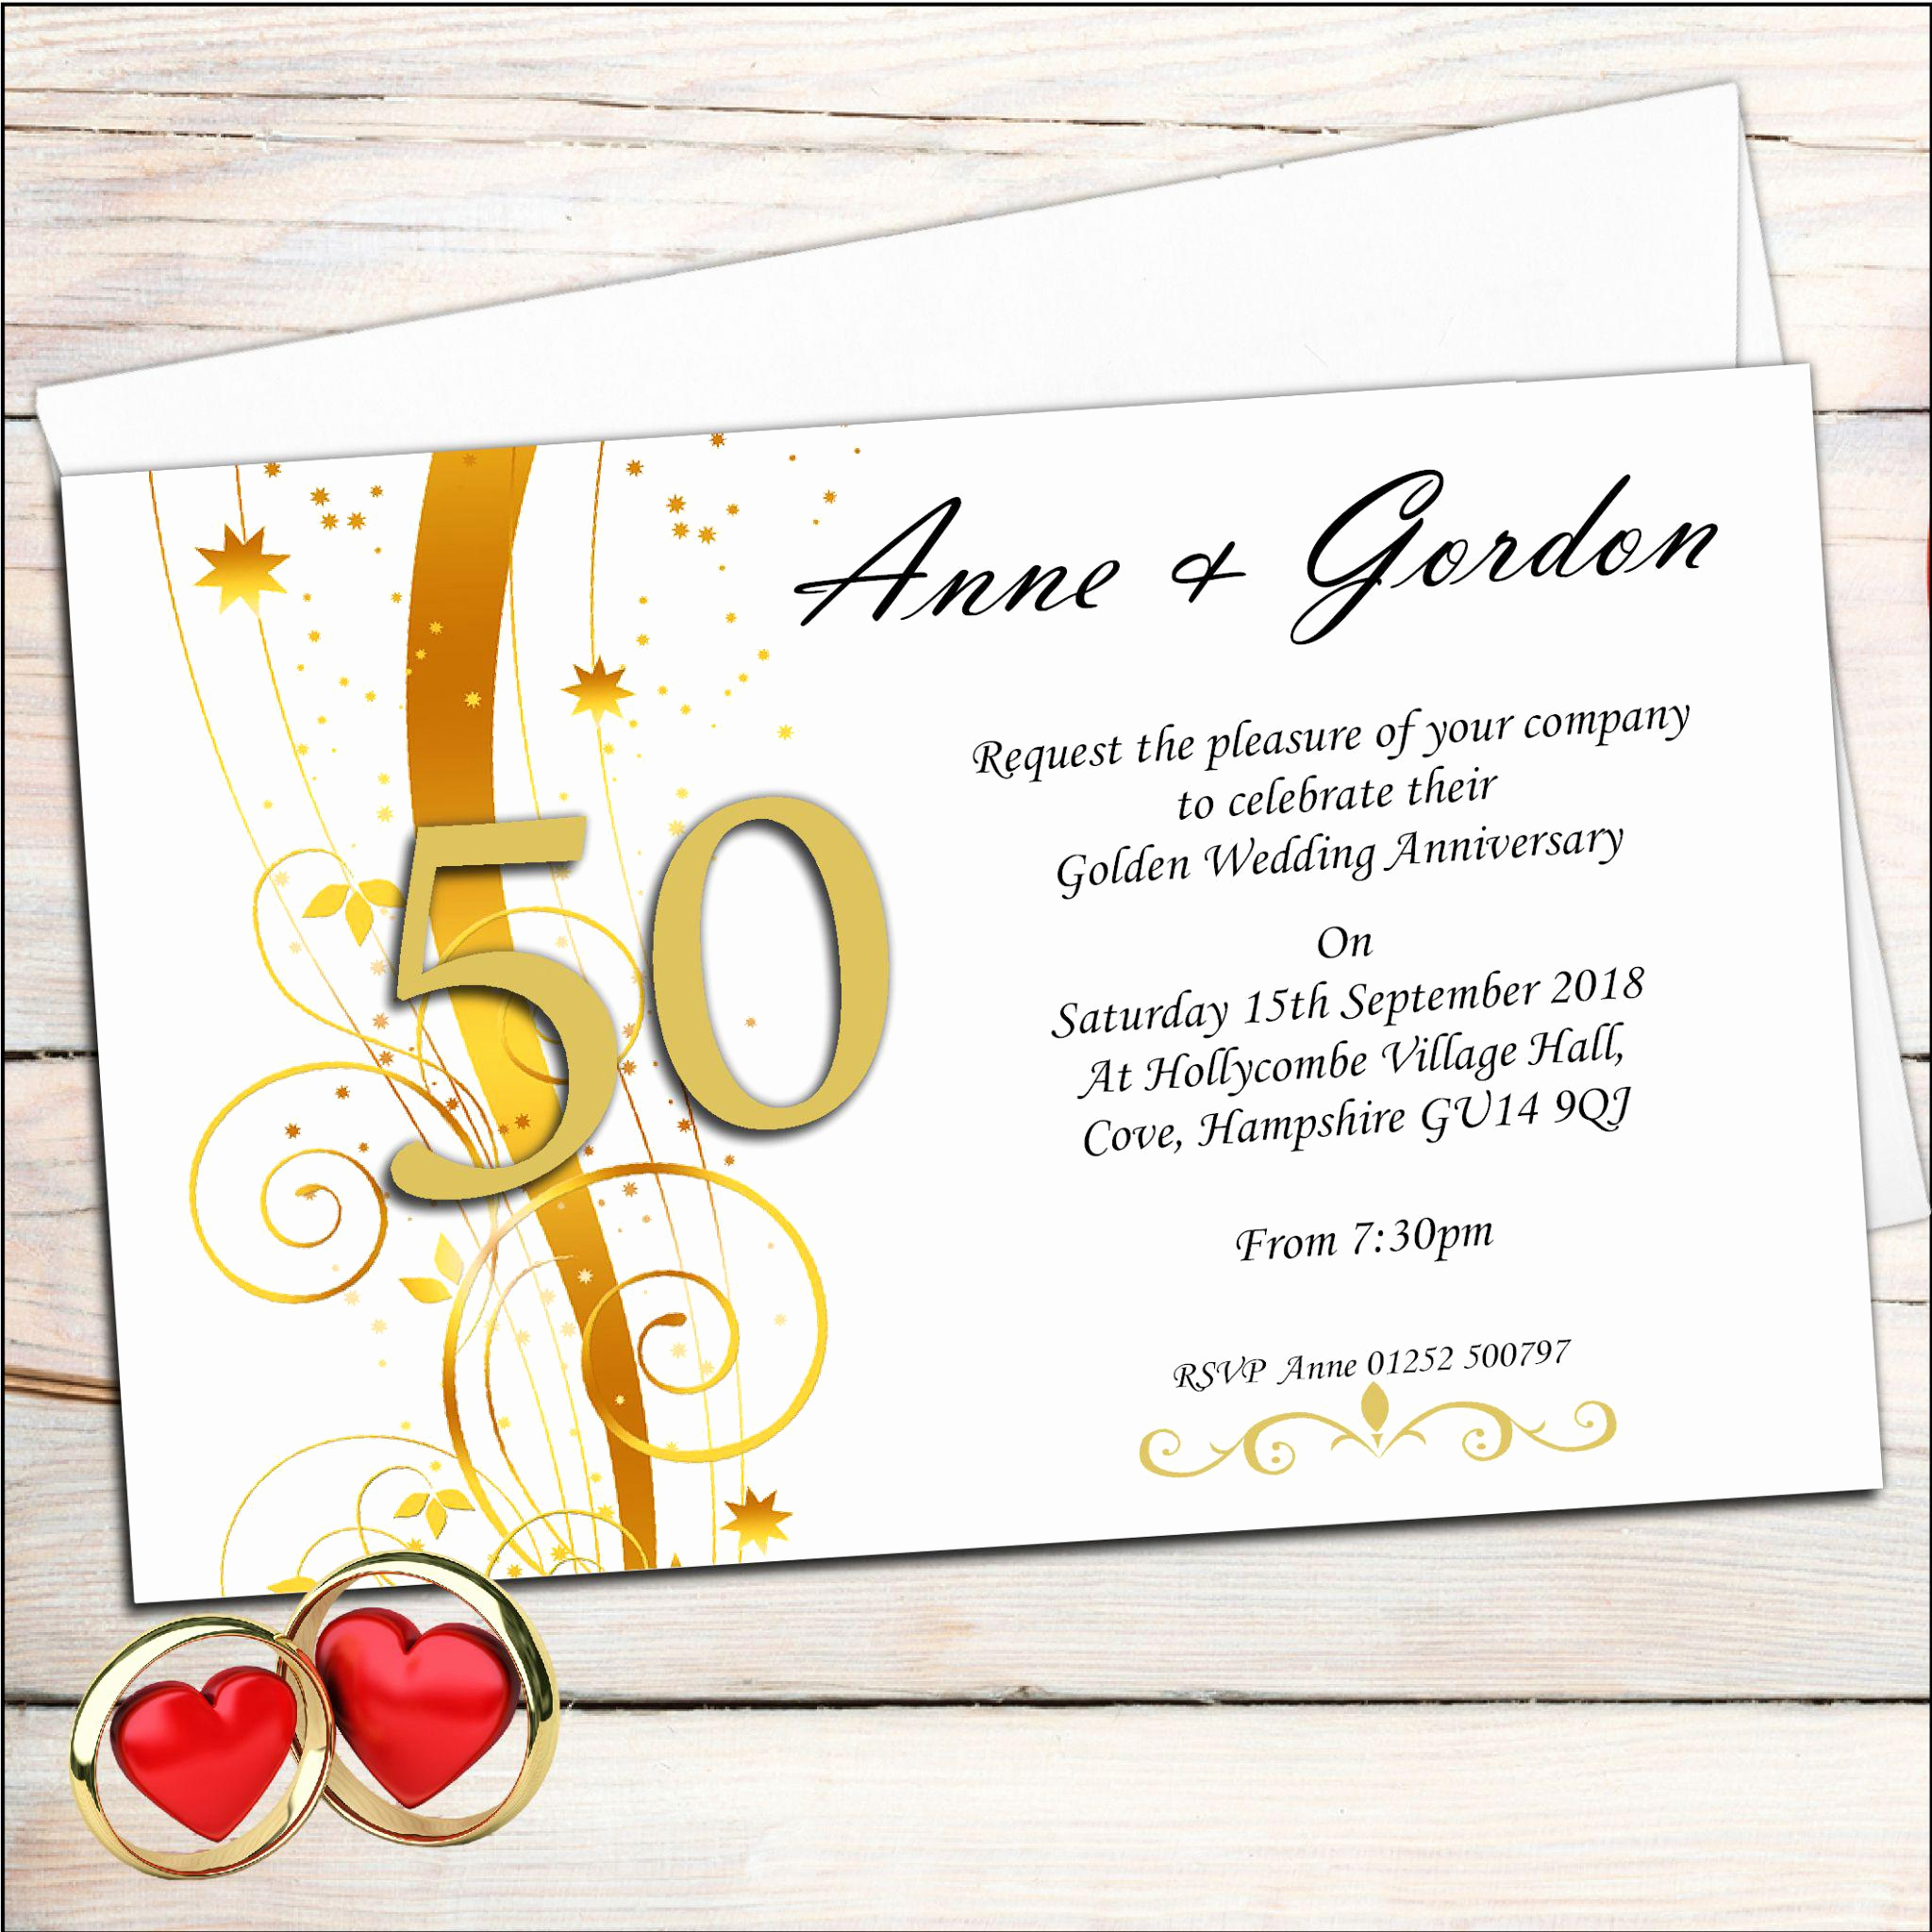 Golden Anniversary Invitation Wording Best Of Golden Wedding Anniversary Invitations 50th Wedding